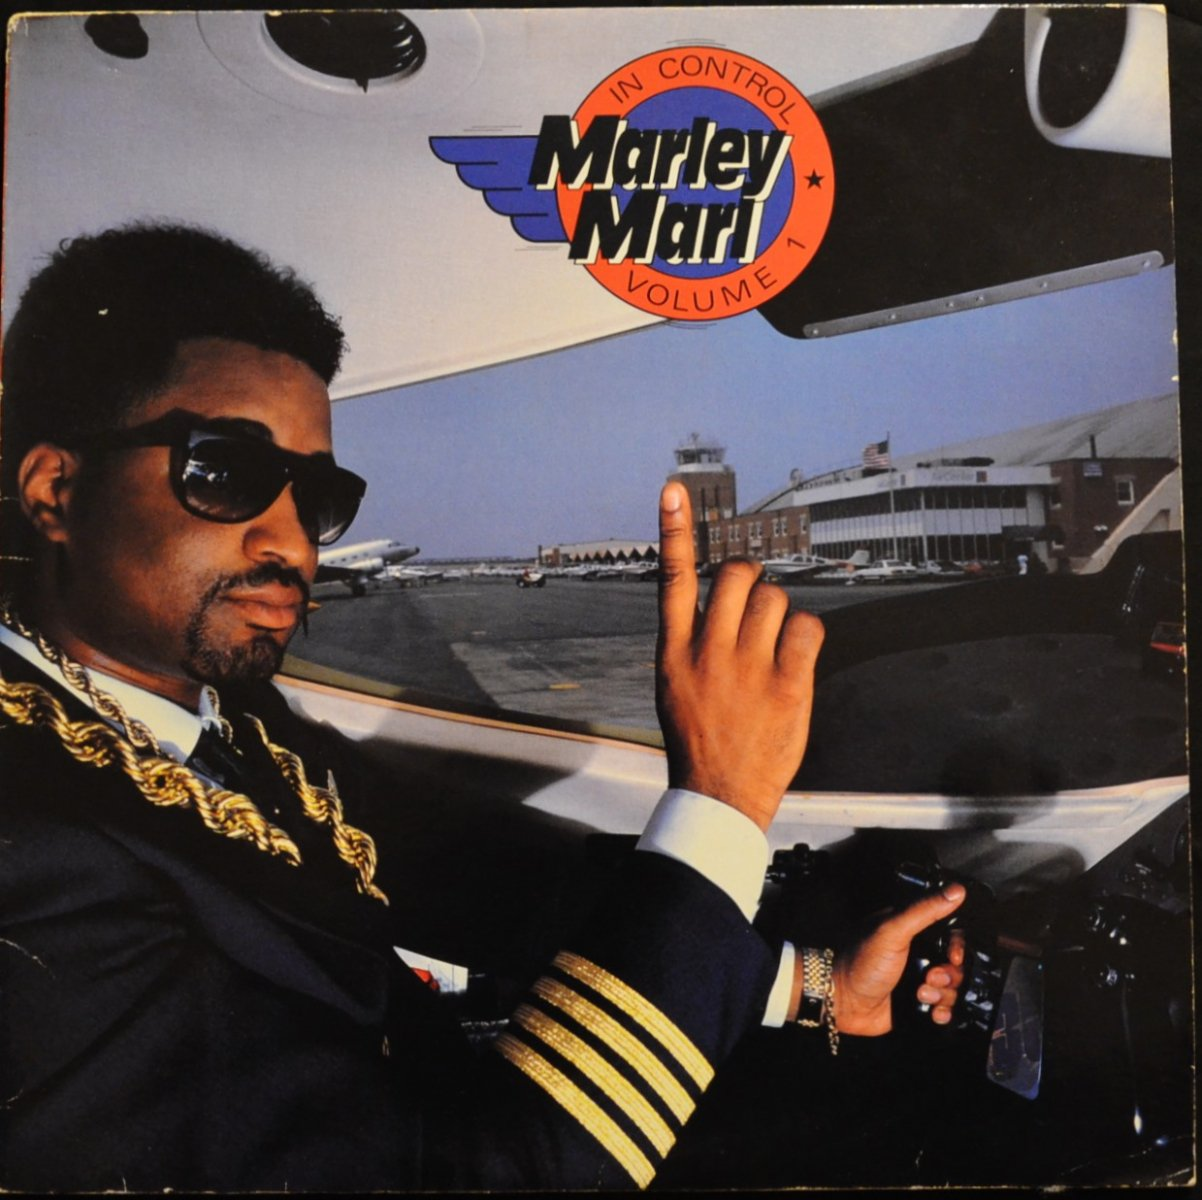 MARLEY MARL / IN CONTROL, VOLUME 1 (1LP)